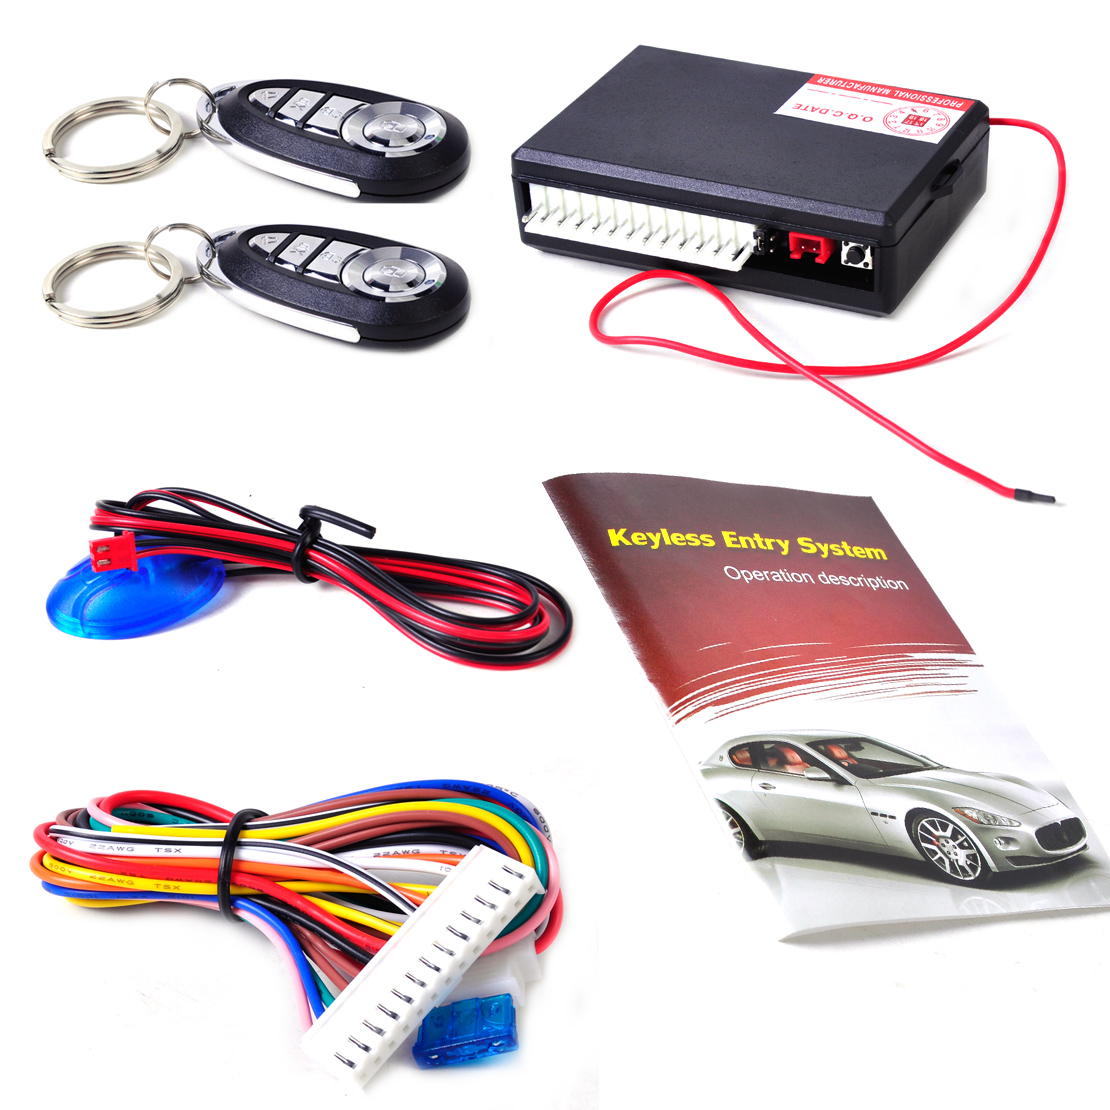 DWCX Car Vehicle Keyless Entry System Central Door Locking Control 2 Remote Controller for Ford BMW Nissan Audi VW Honda Toyota